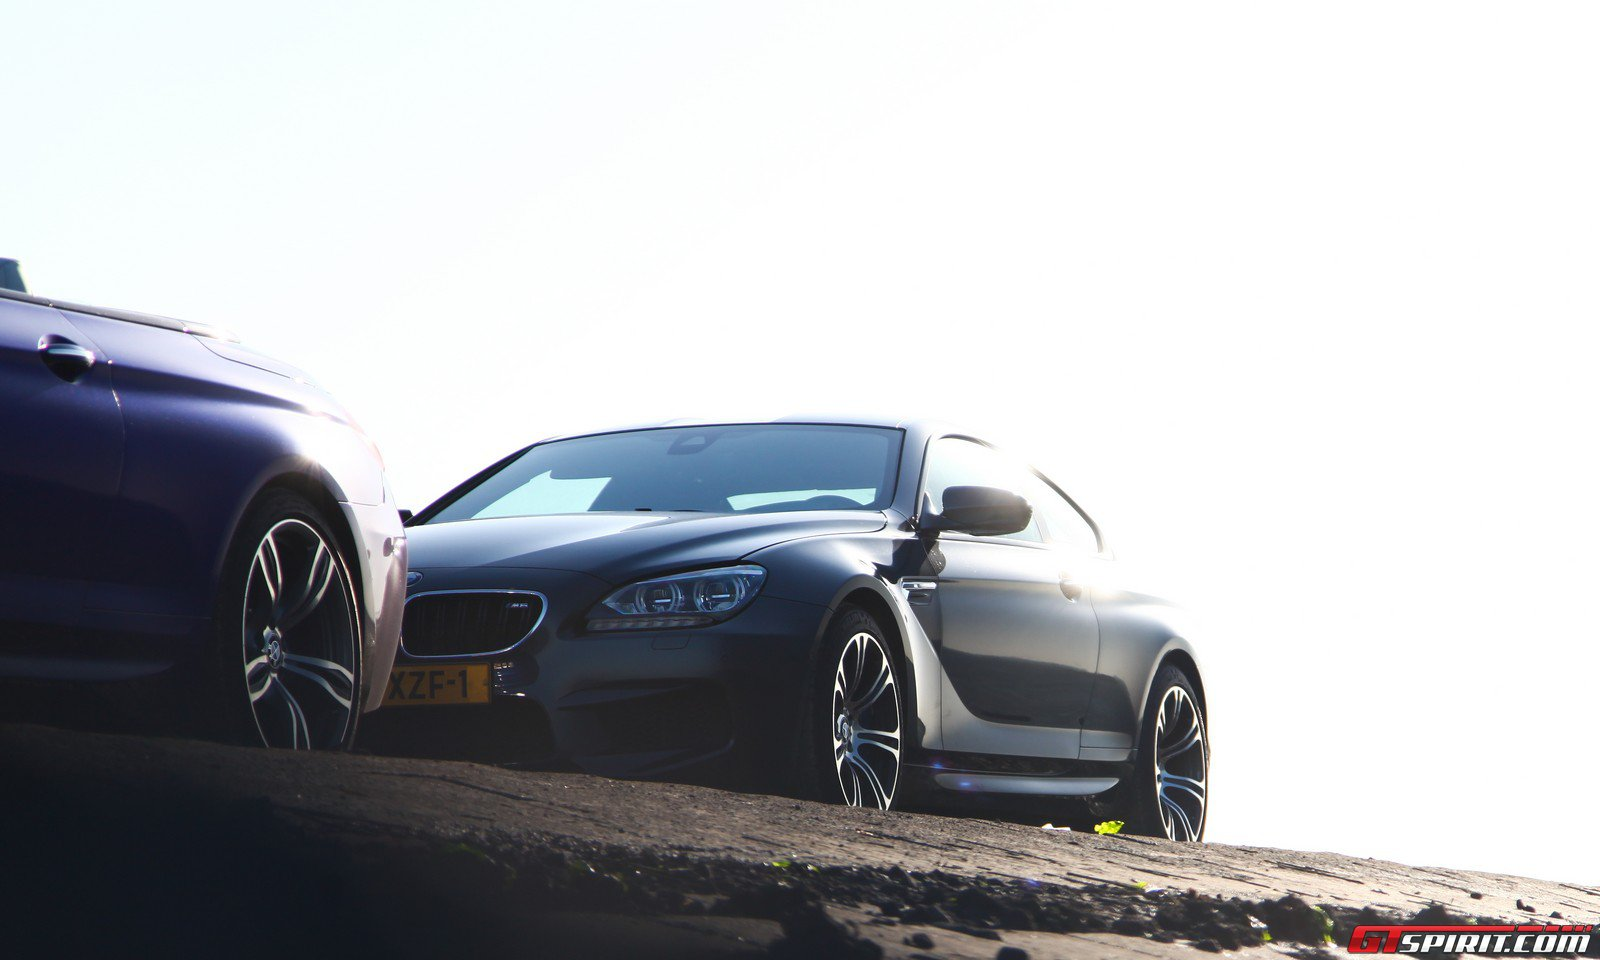 road-test-2012-bmw-m6-coupe-vs-m6-convertible-007